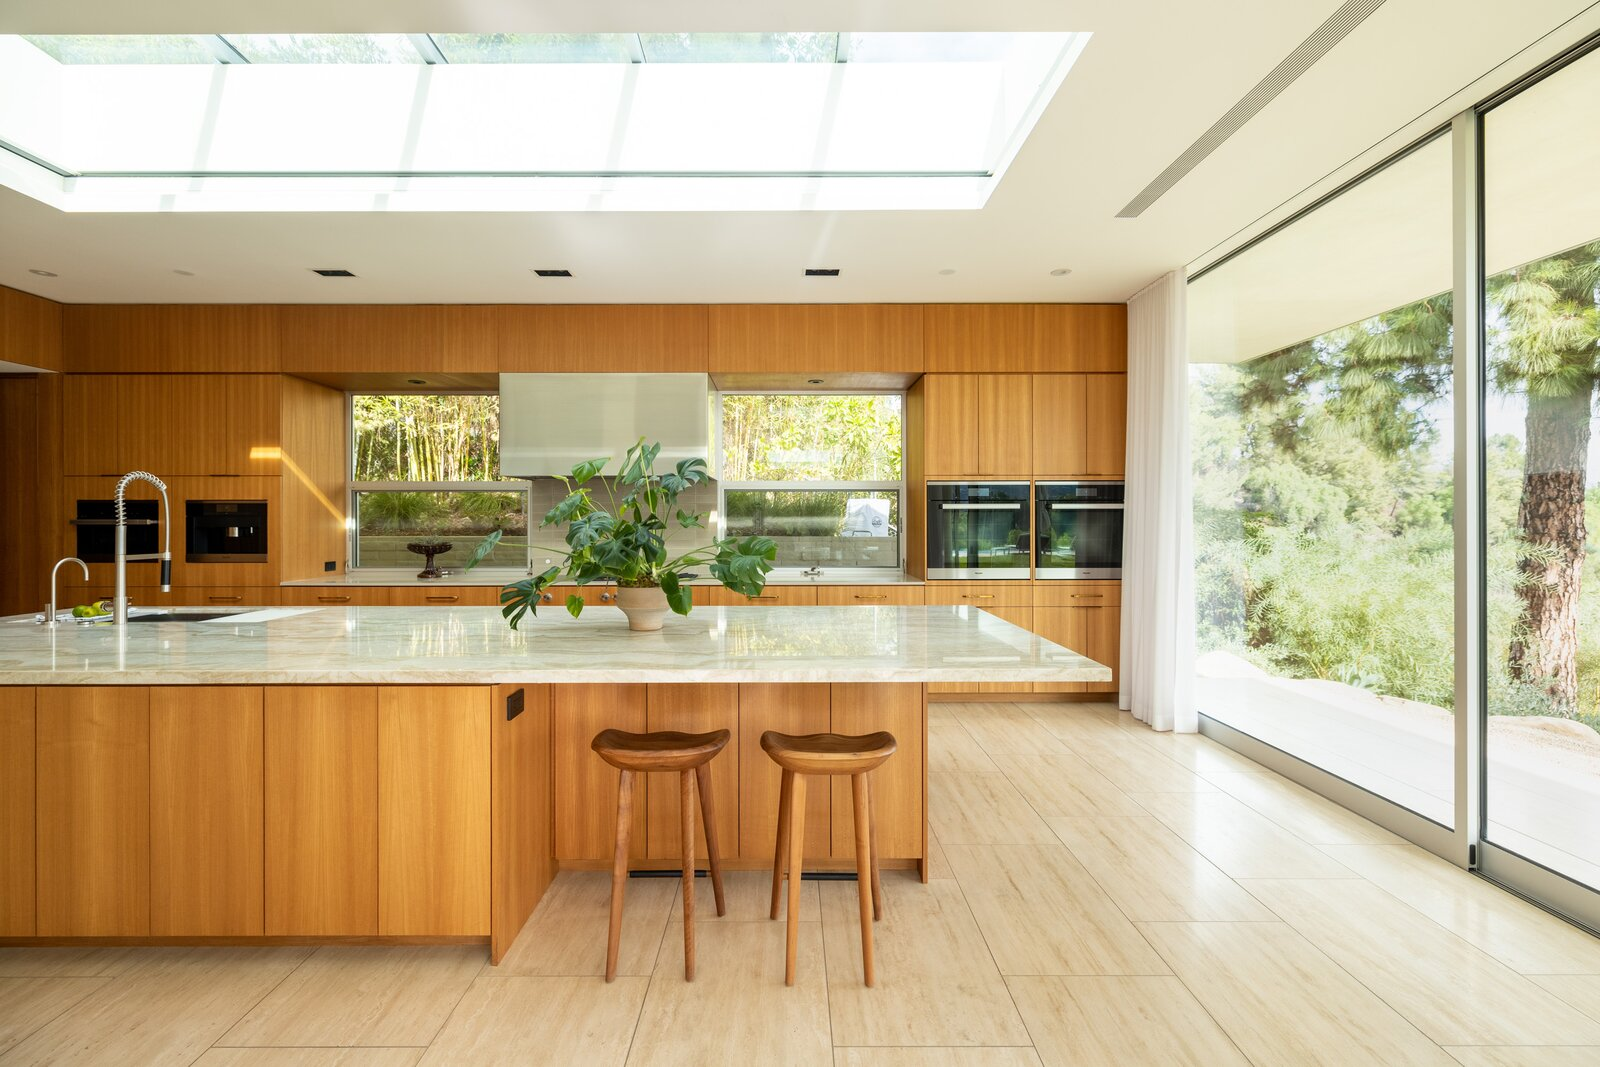 Kitchen of Clear Oak Residence by Woods & Dangaran Architects